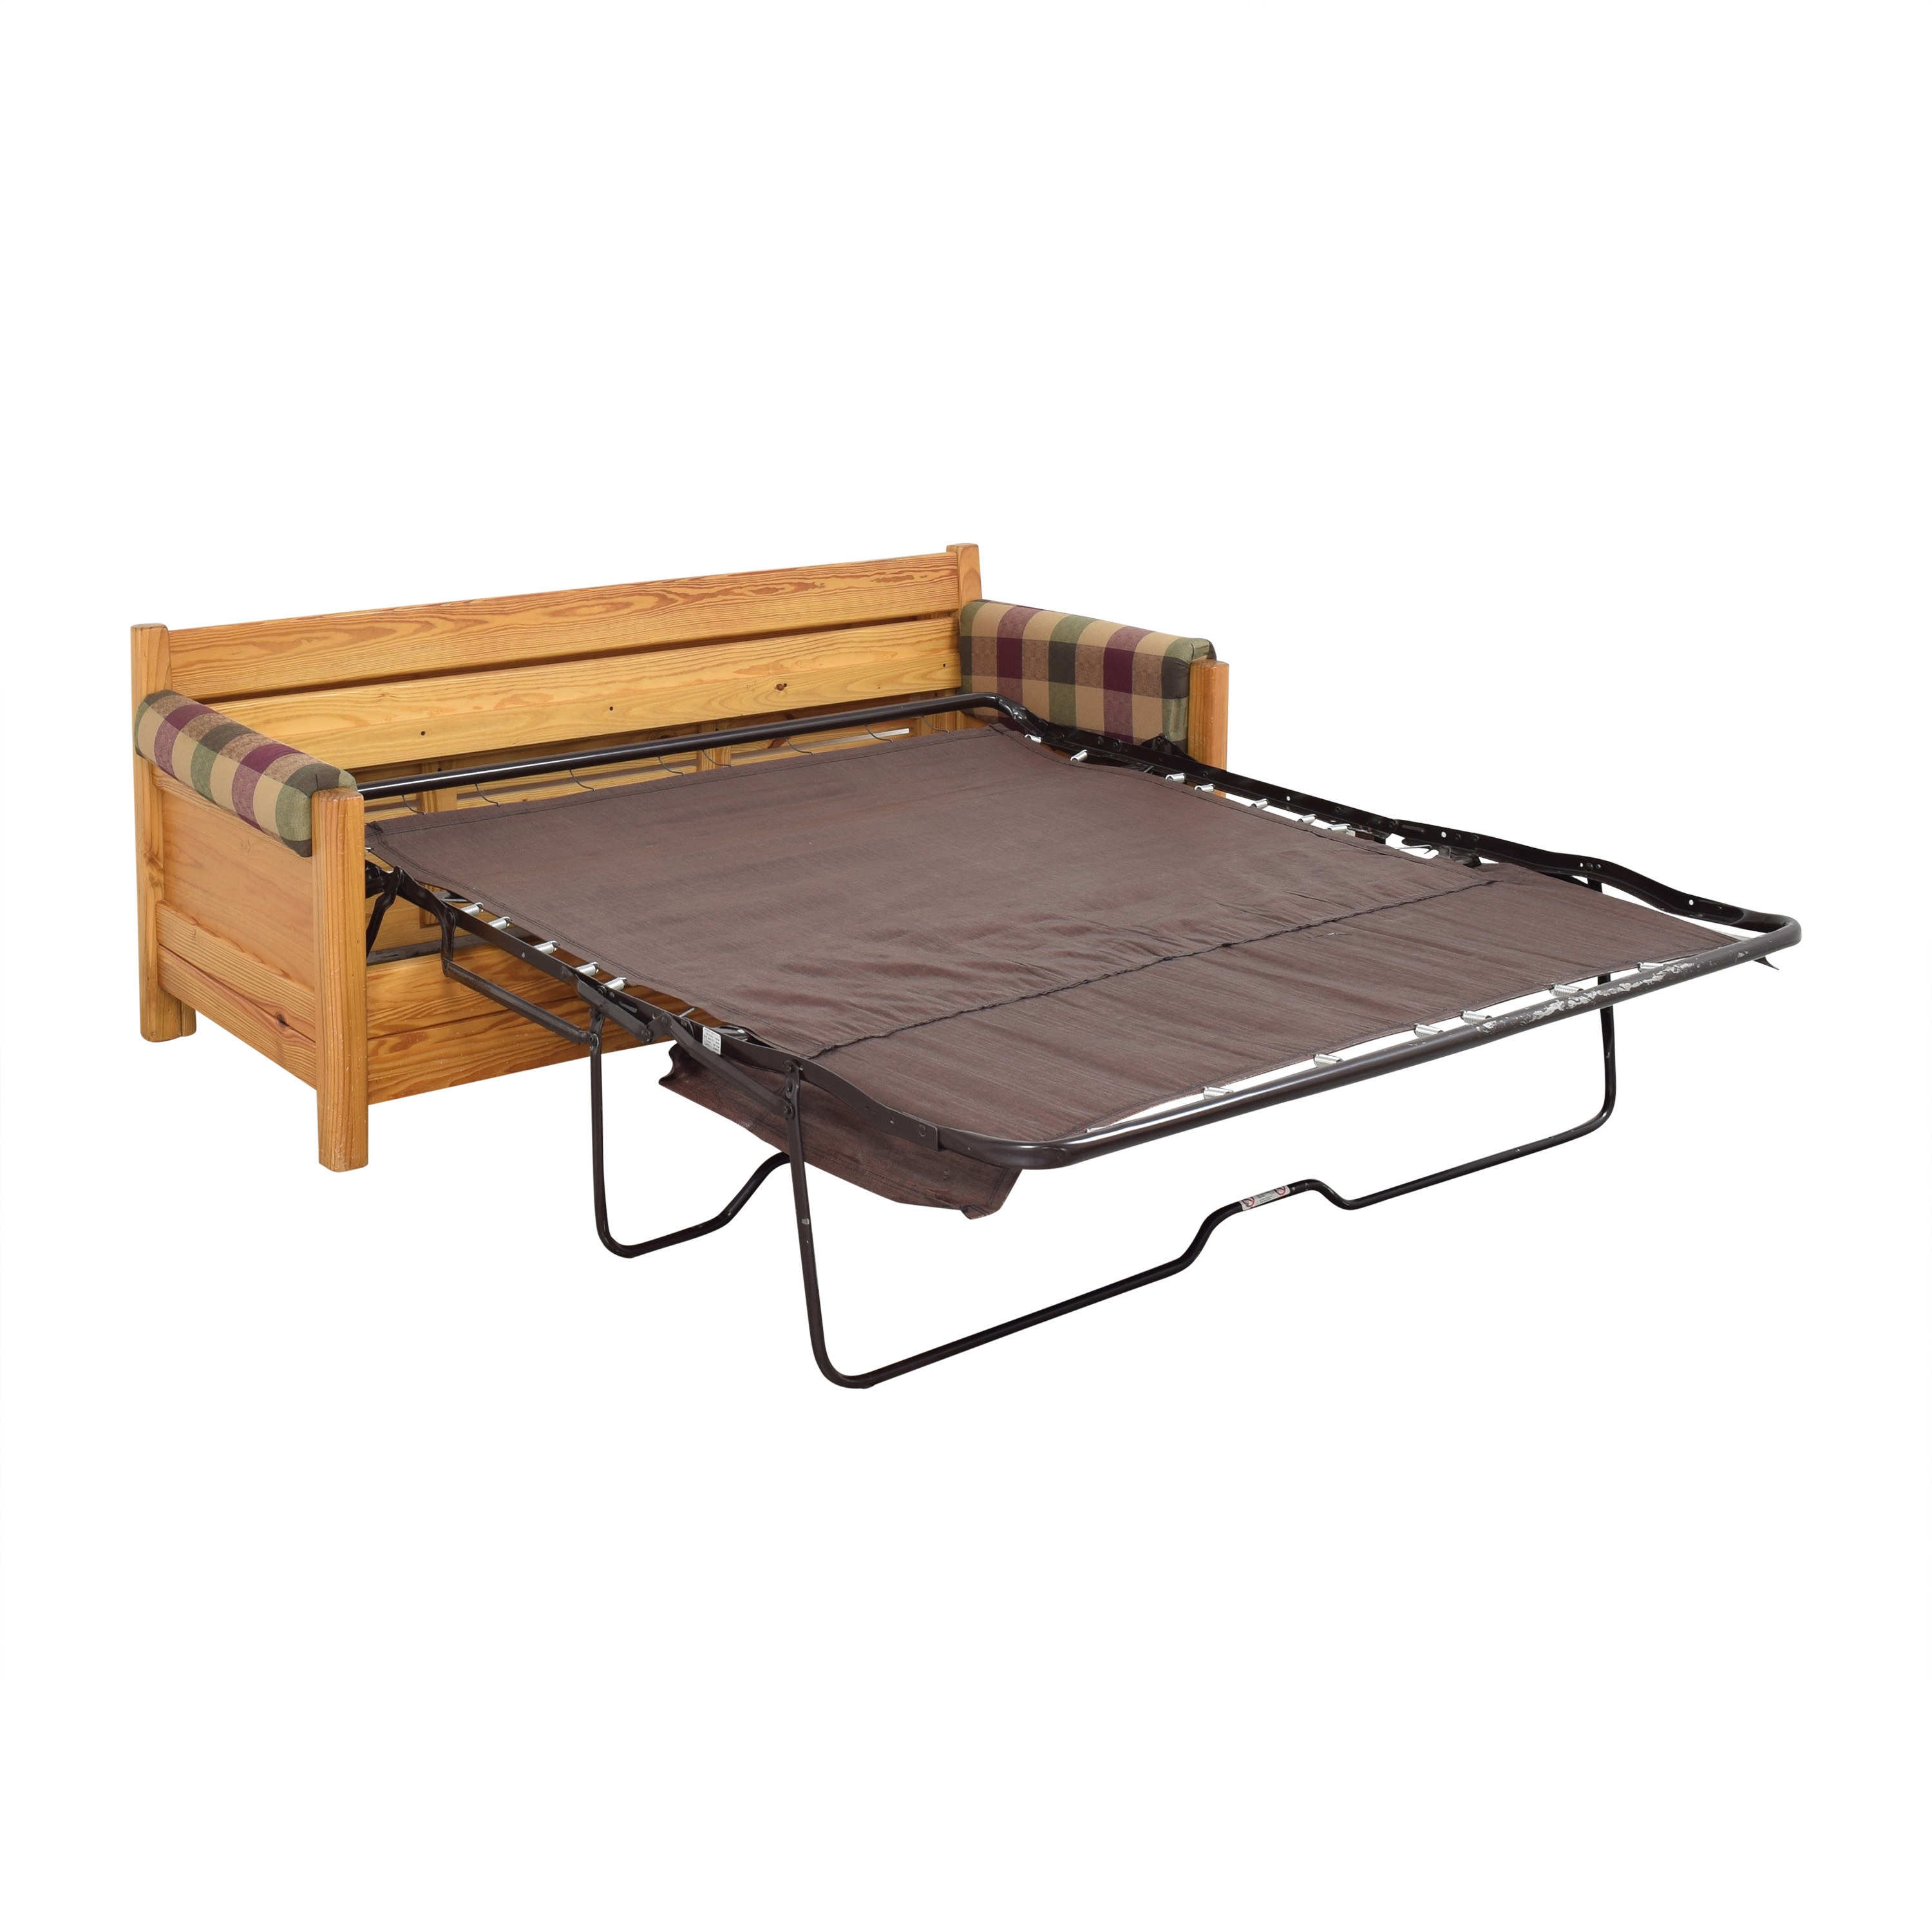 shop This End Up This End Up Sleeper Sofa online